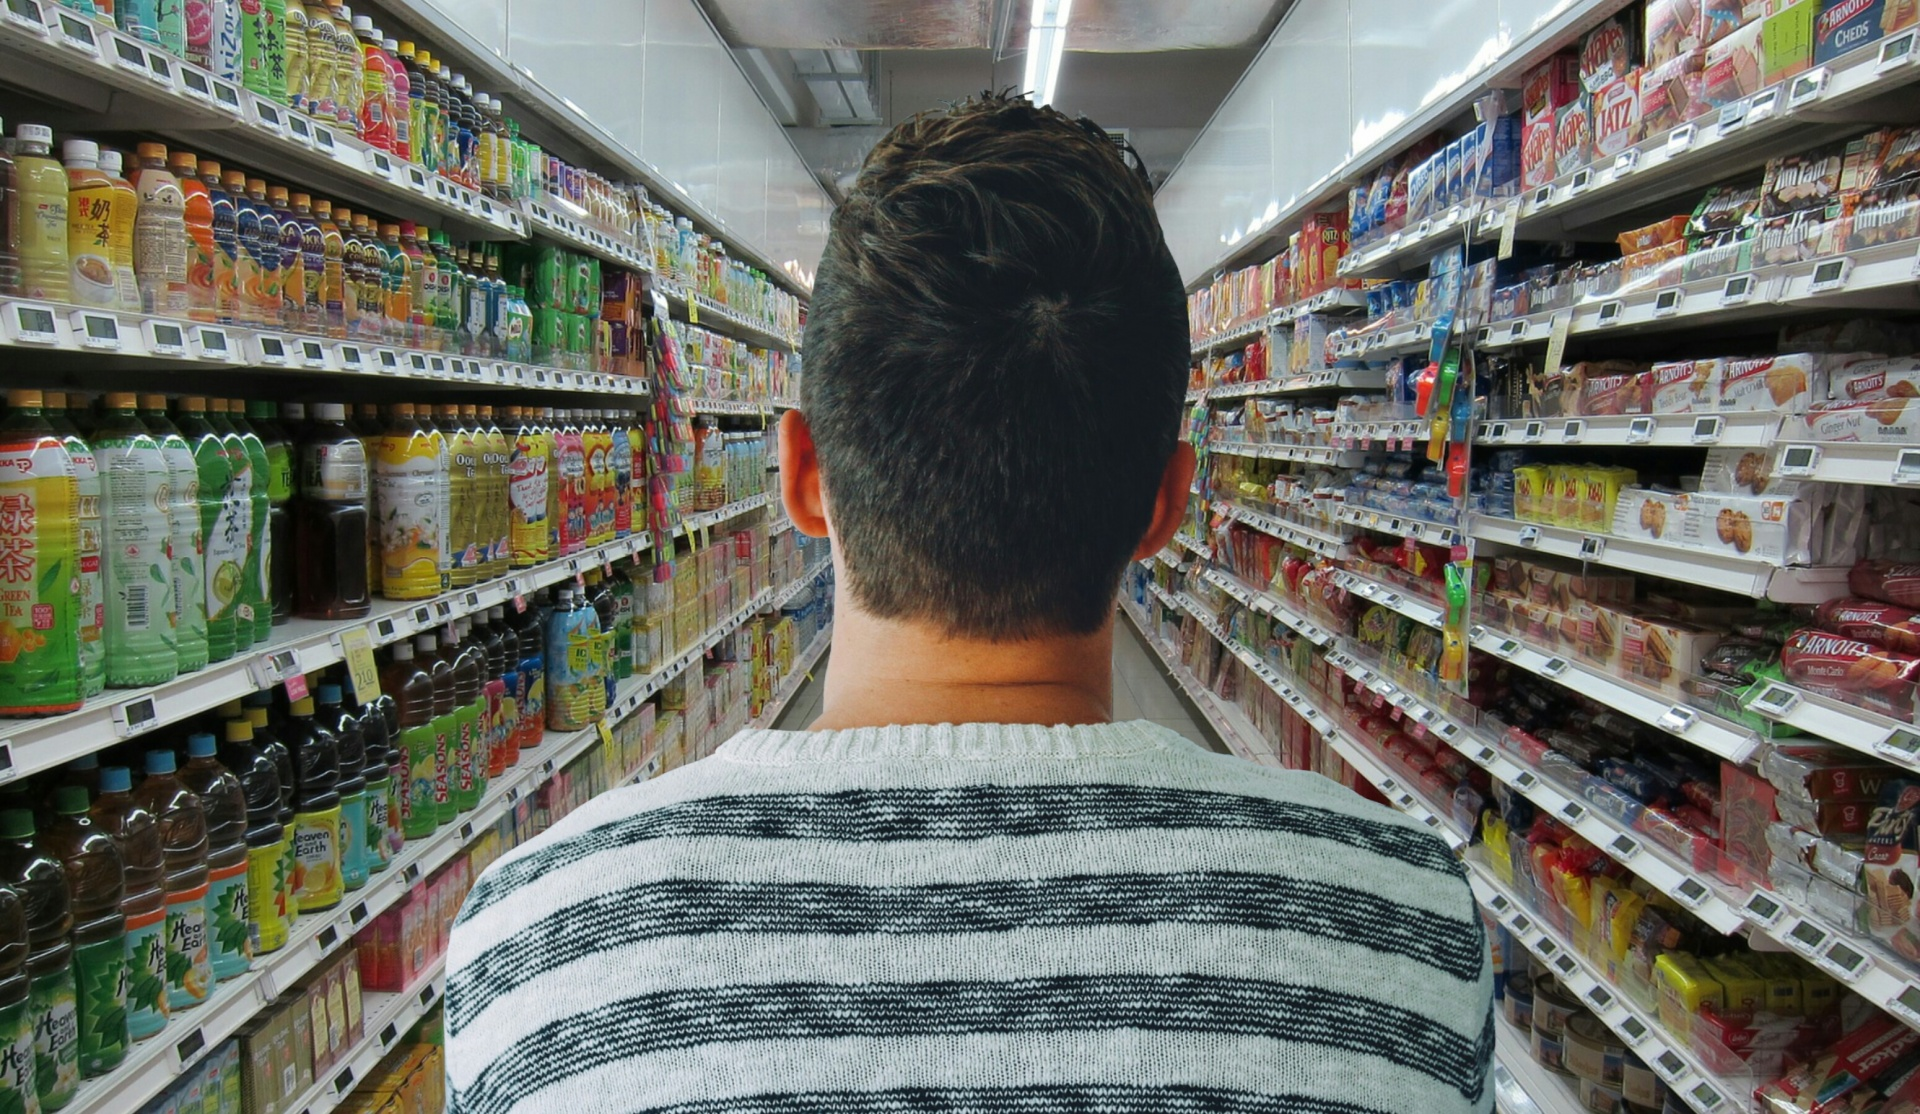 Customers can feel overwhelmed in traditional stores